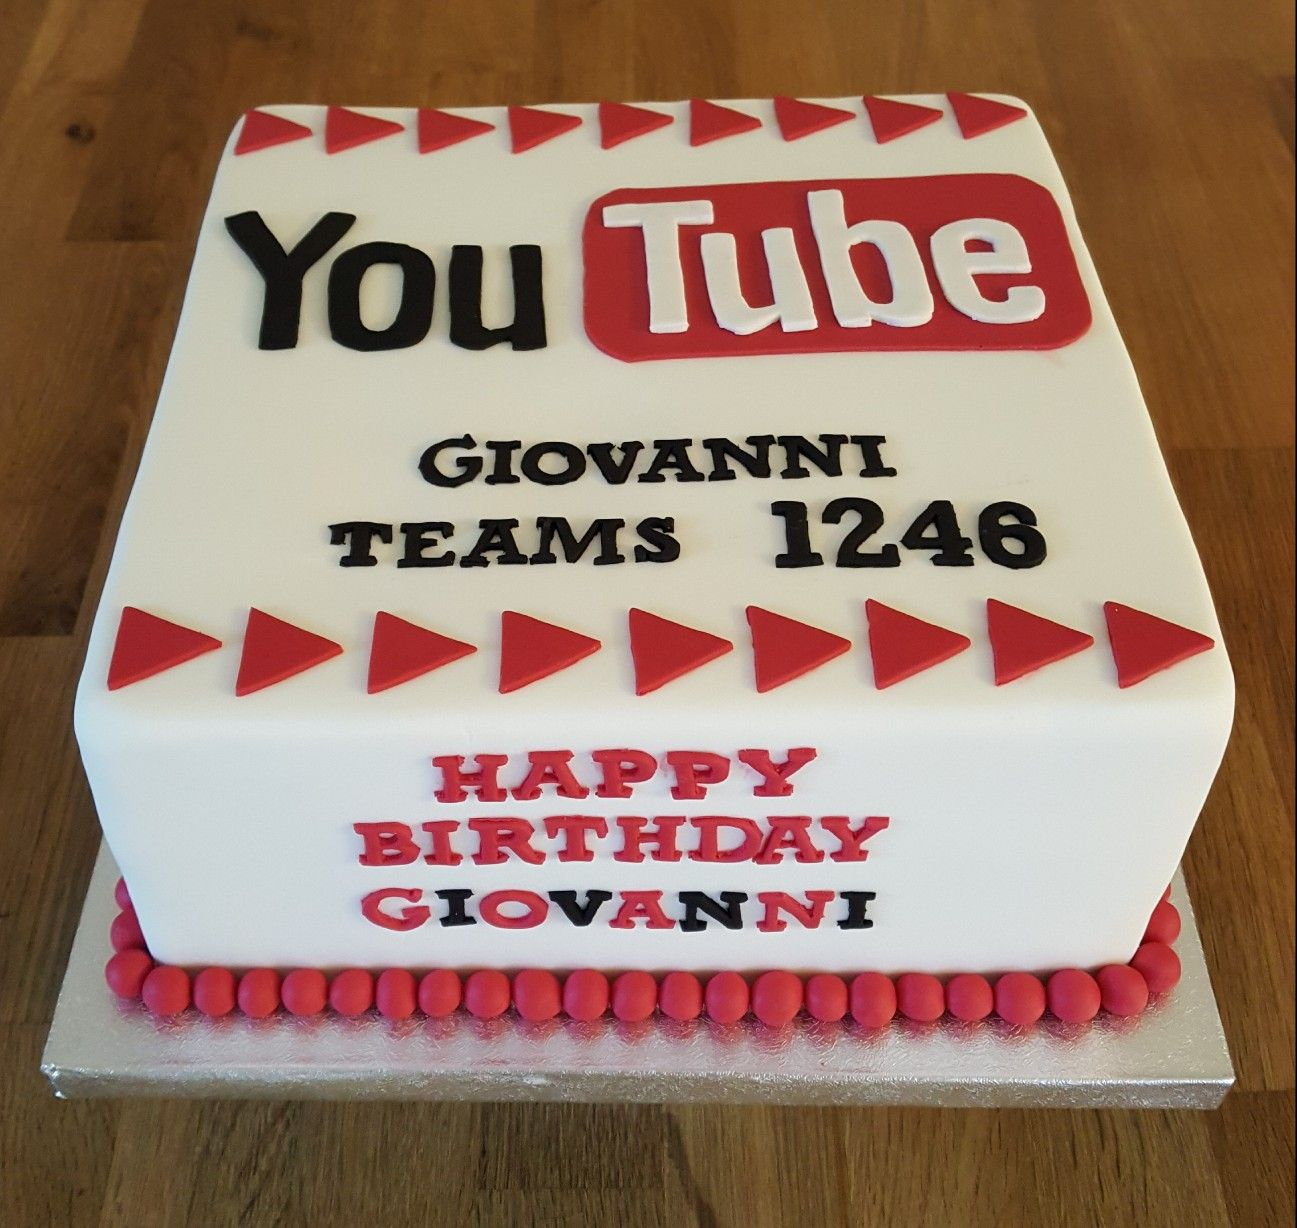 Marvelous You Tube Themed Birthday Cake Themed Birthday Cakes Lake Personalised Birthday Cards Paralily Jamesorg